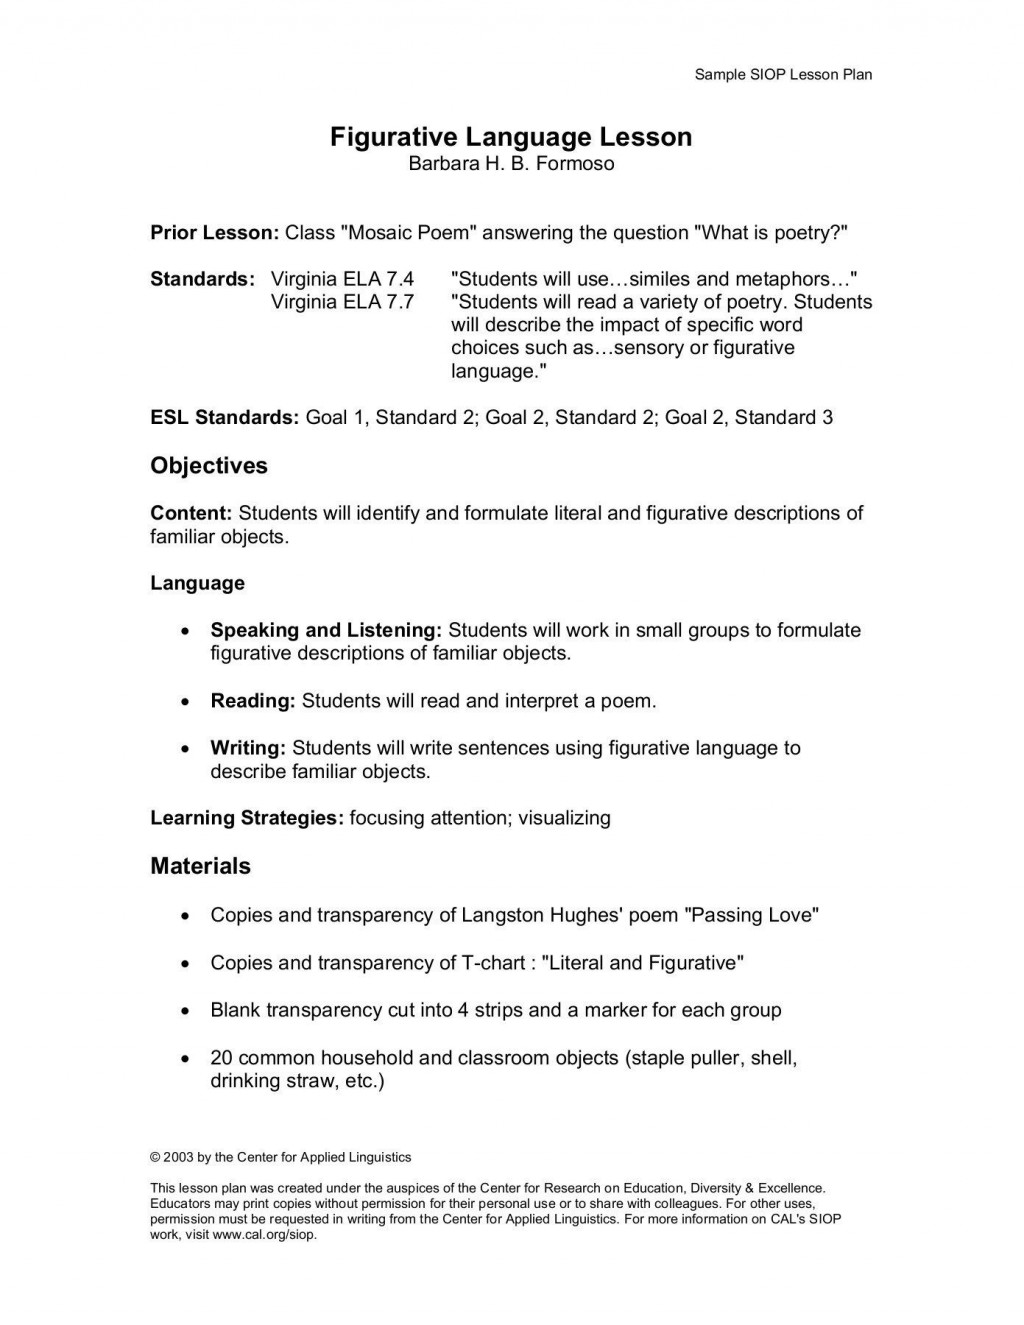 001 Unusual Siop Lesson Plan Template 1 Example High Definition Large